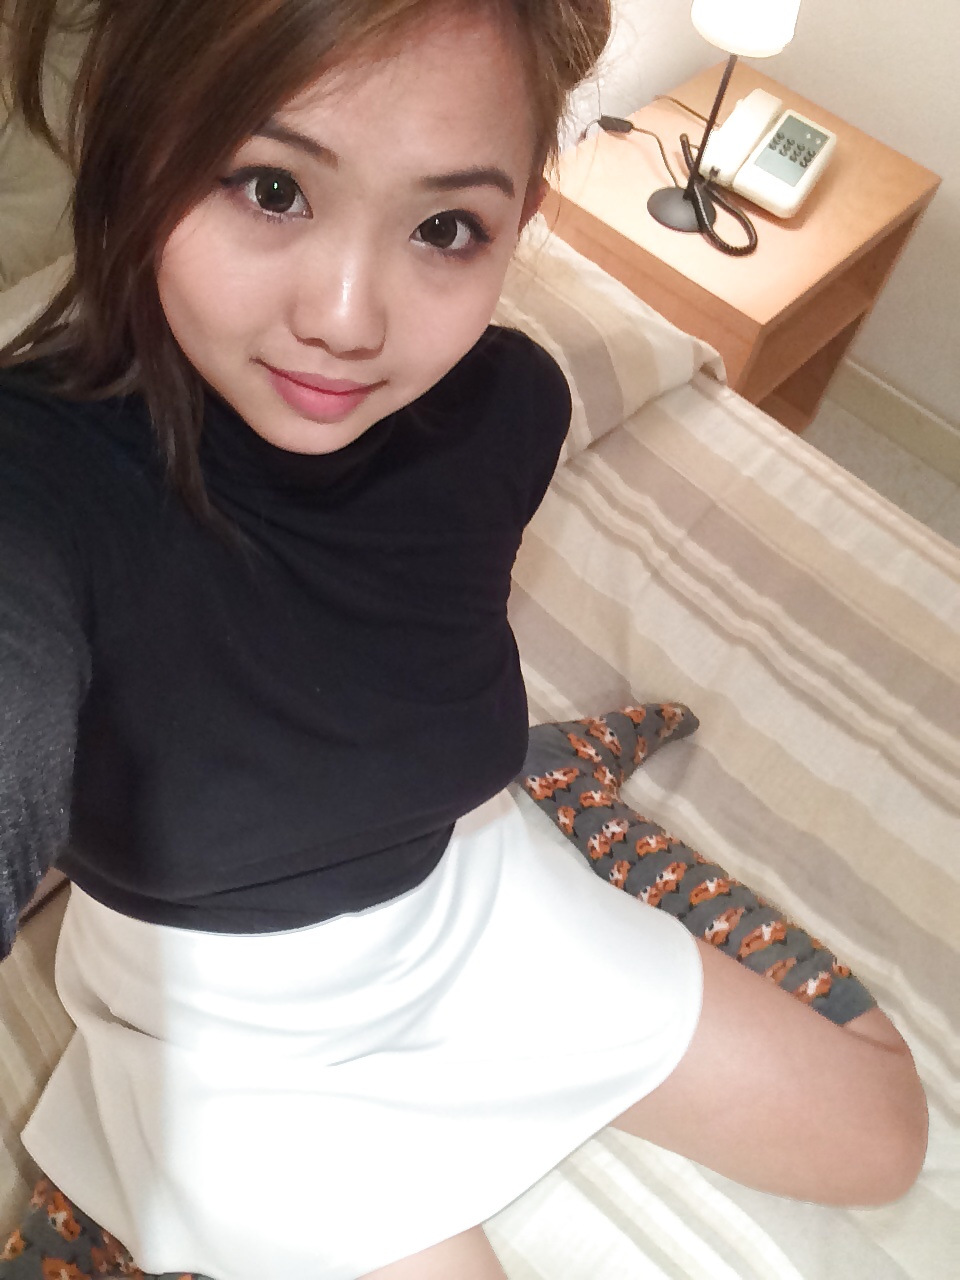 teen tits pictures my favorite chinese girl selfie